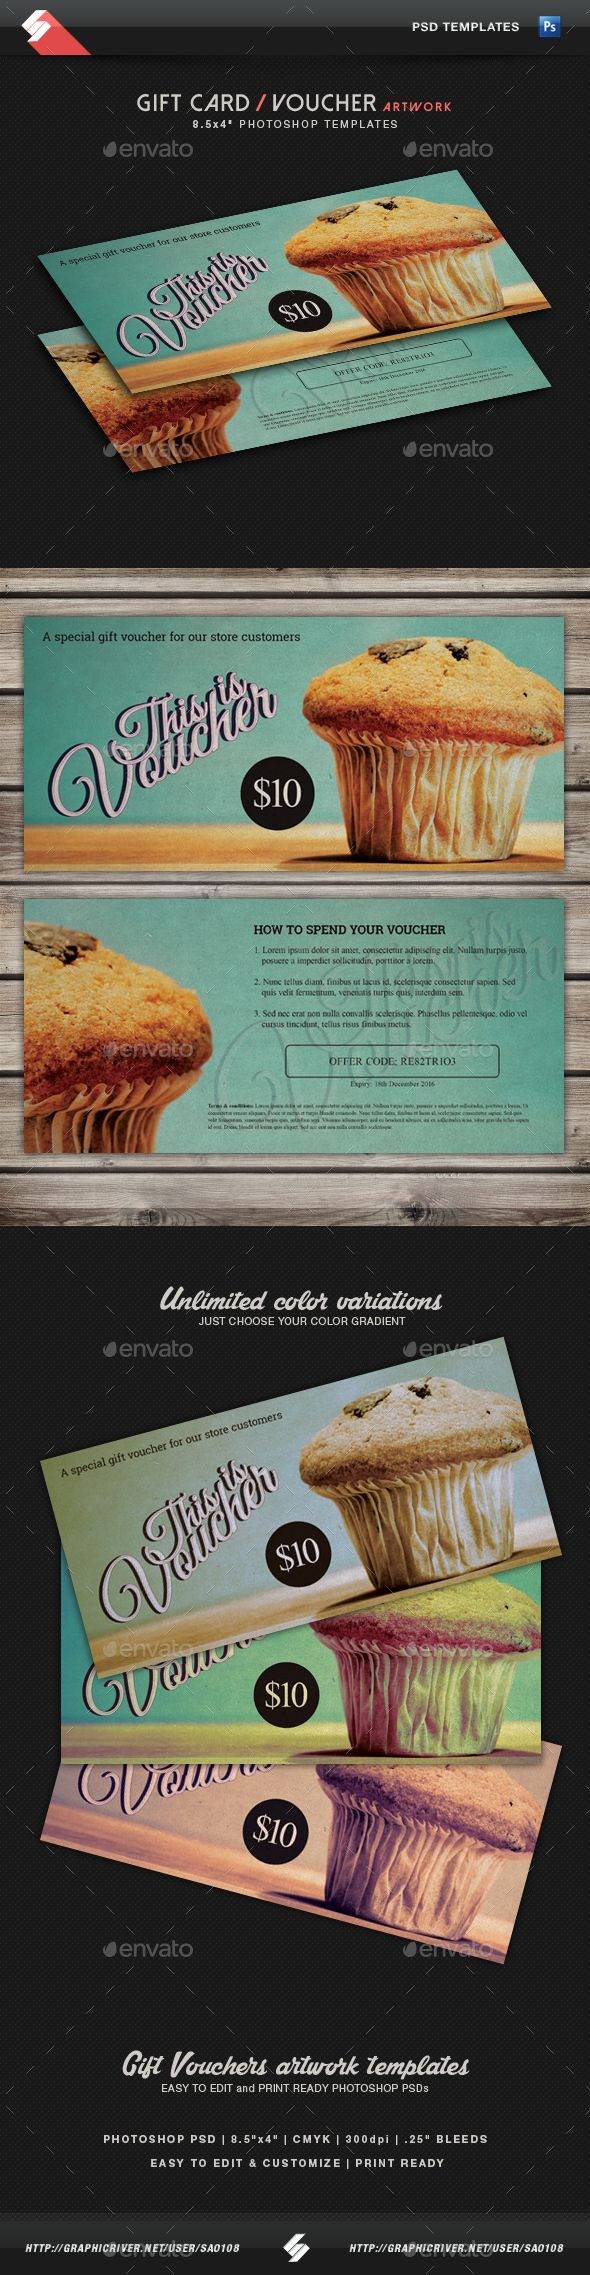 Best Voucher Design Images On   Gift Cards Gift